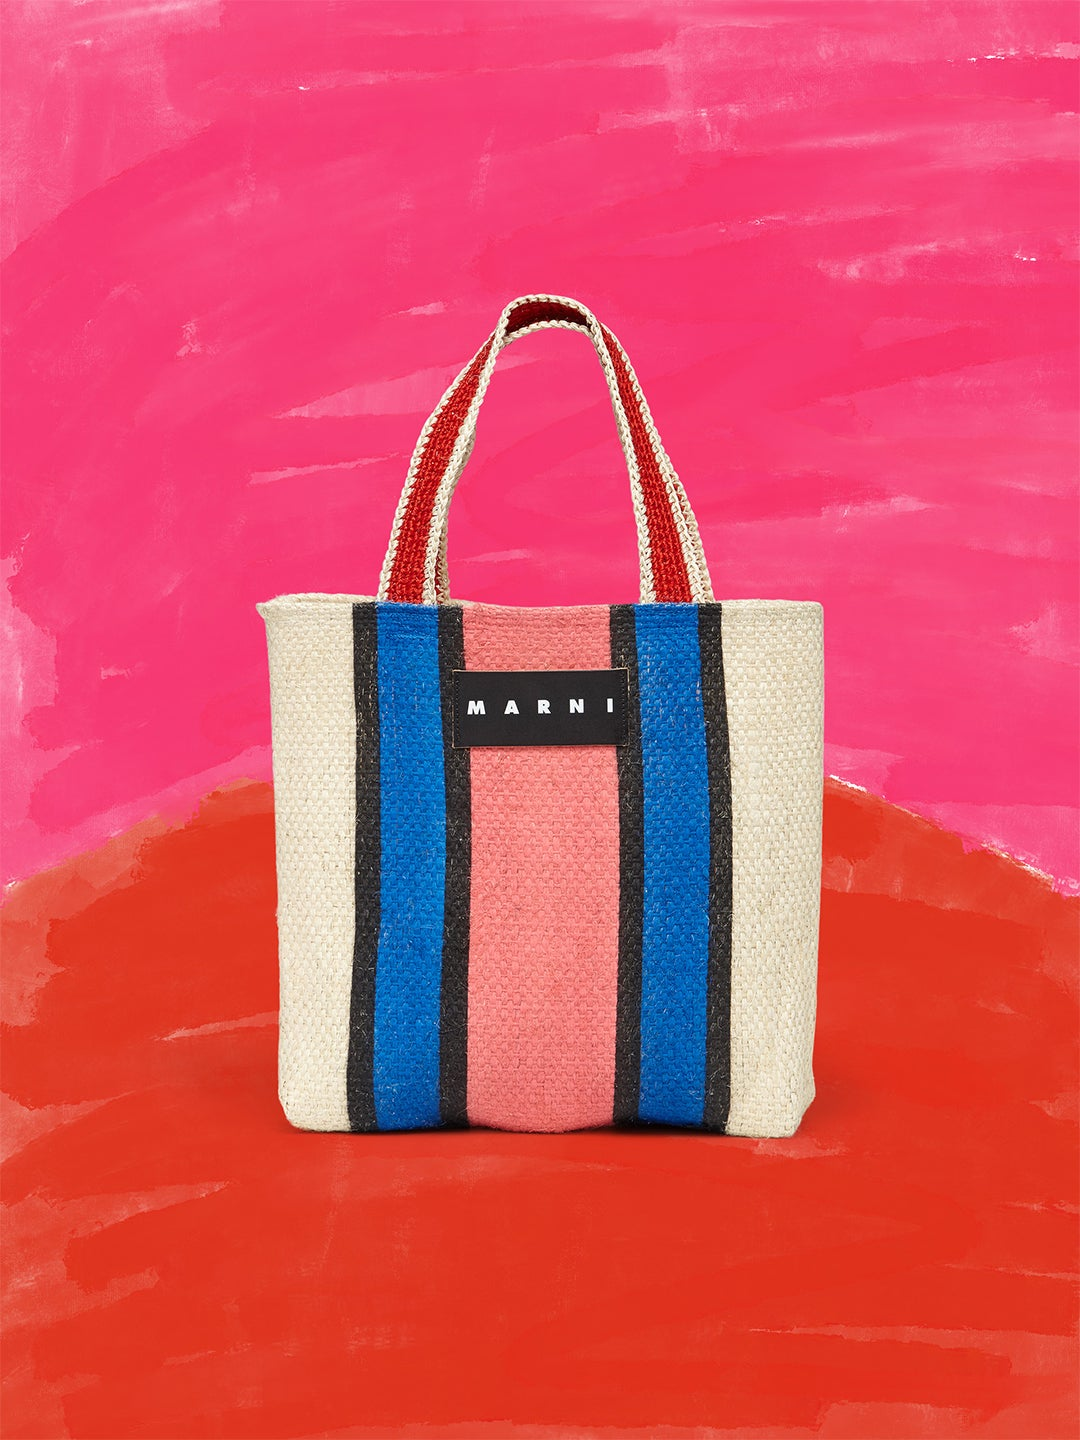 blue and pink shopping tote Marni